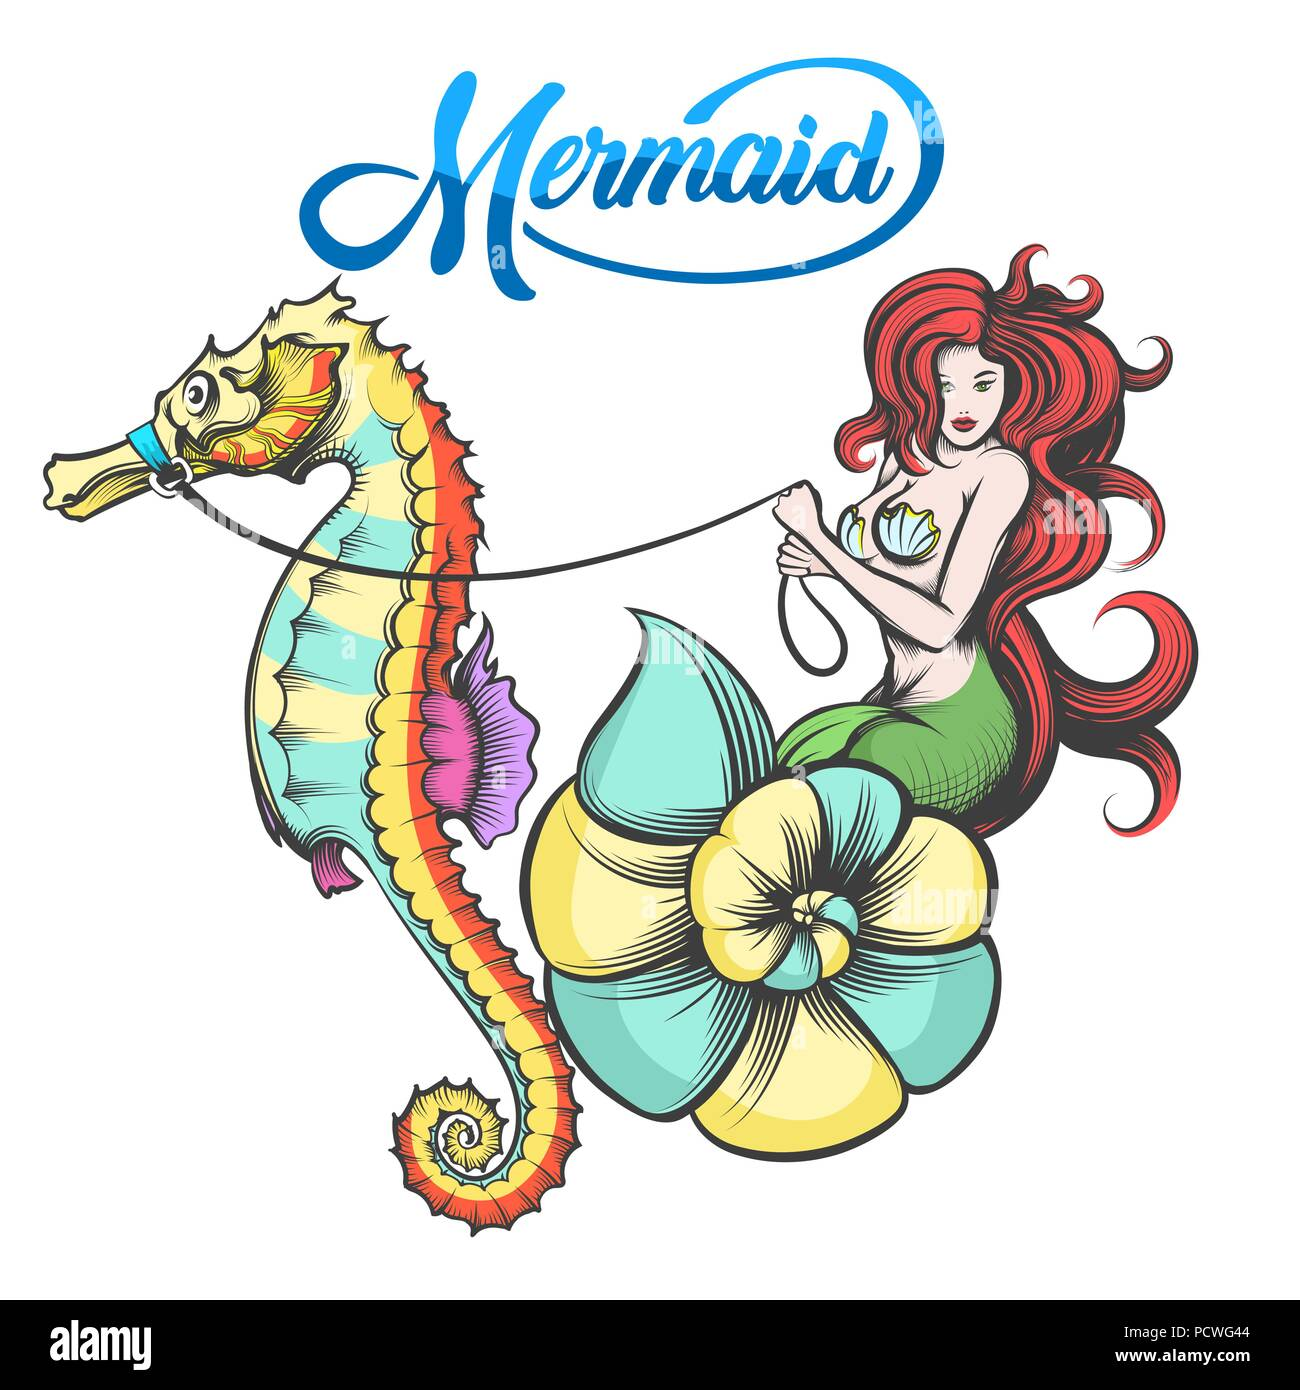 Redhair Mermaid In The Shell Controls The Sea Horse Vector Illustration Stock Vector Image Art Alamy